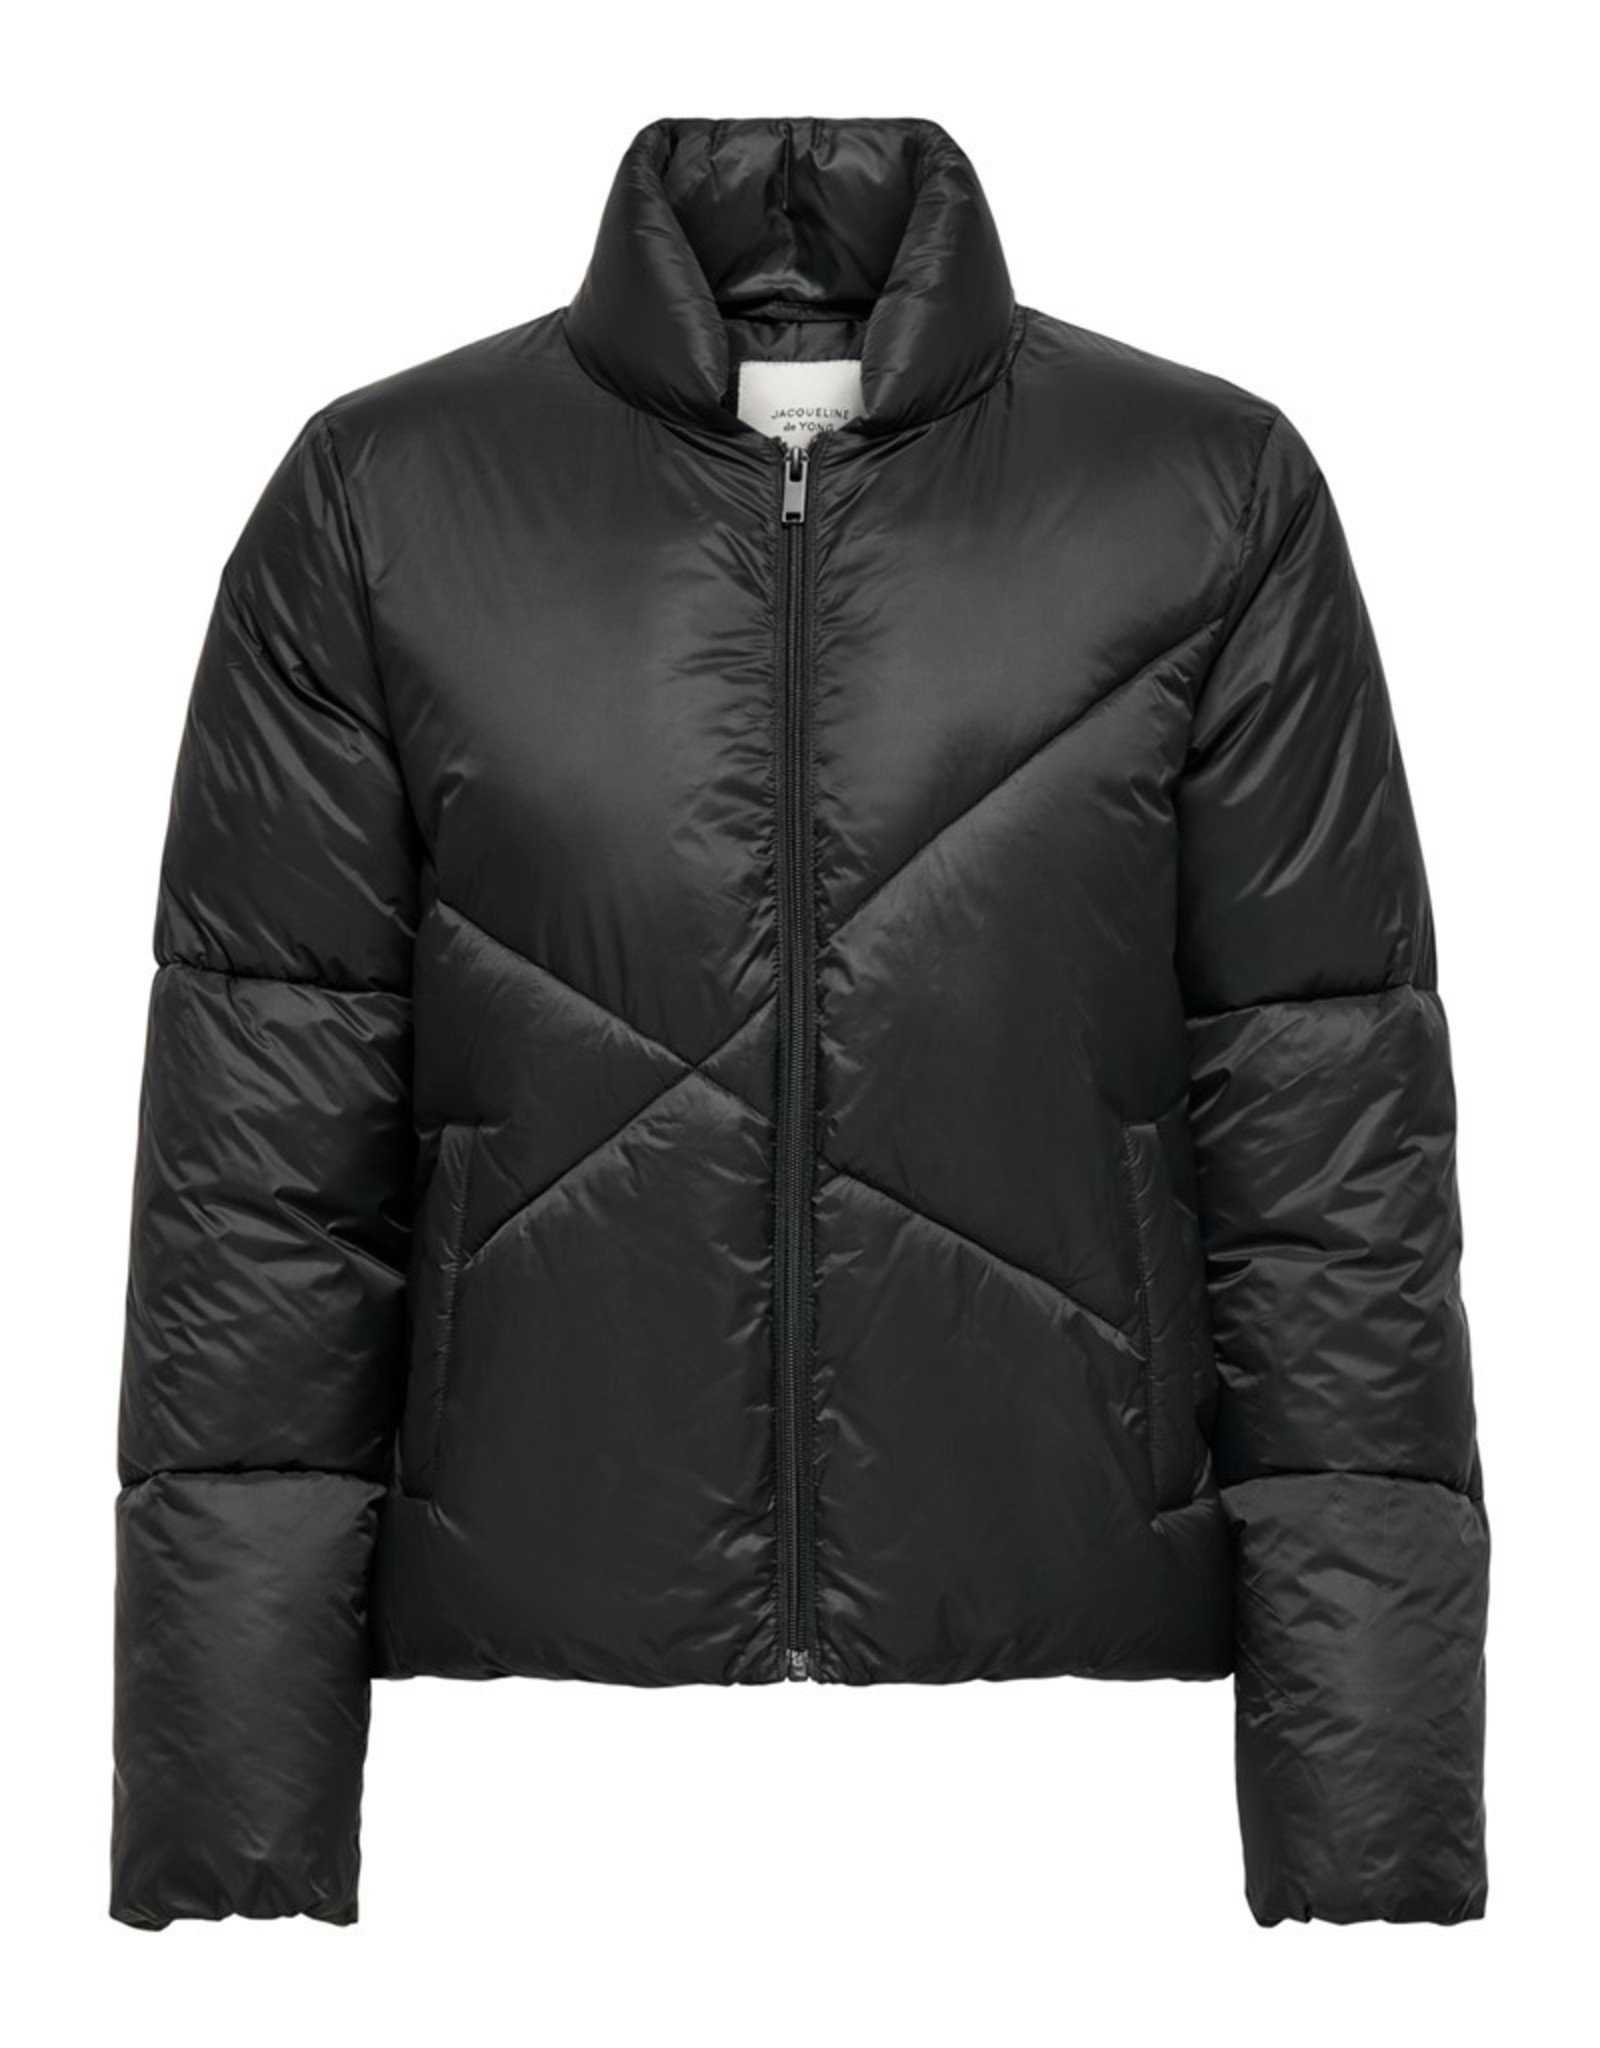 Jacqueline de Yong Timber Padded Jacket